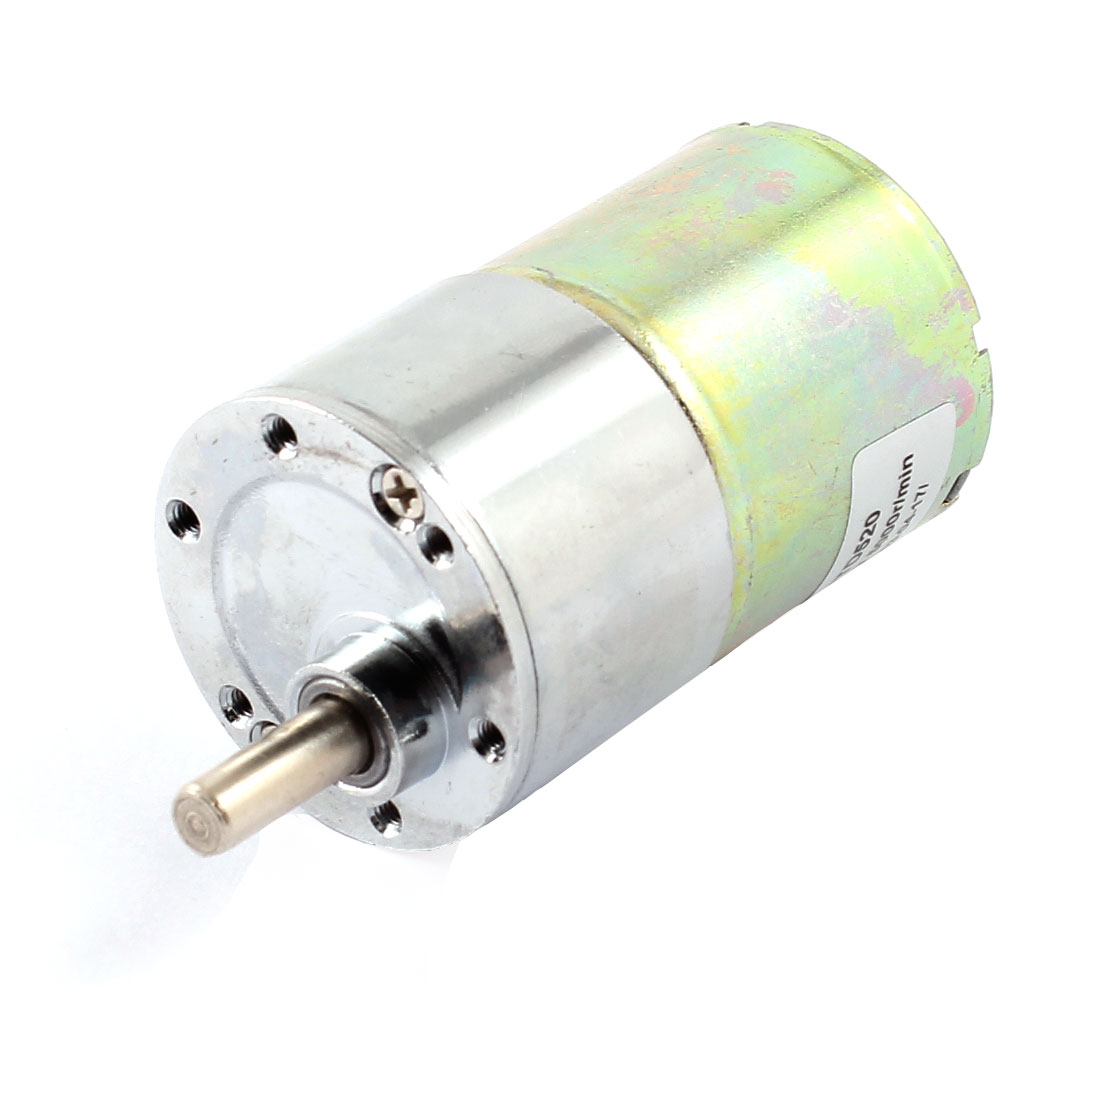 6mm-Shaft-2-Pin-Connector-Cylinder-Shape-Gear-Box-Motor-DC12V-5000R-MIN